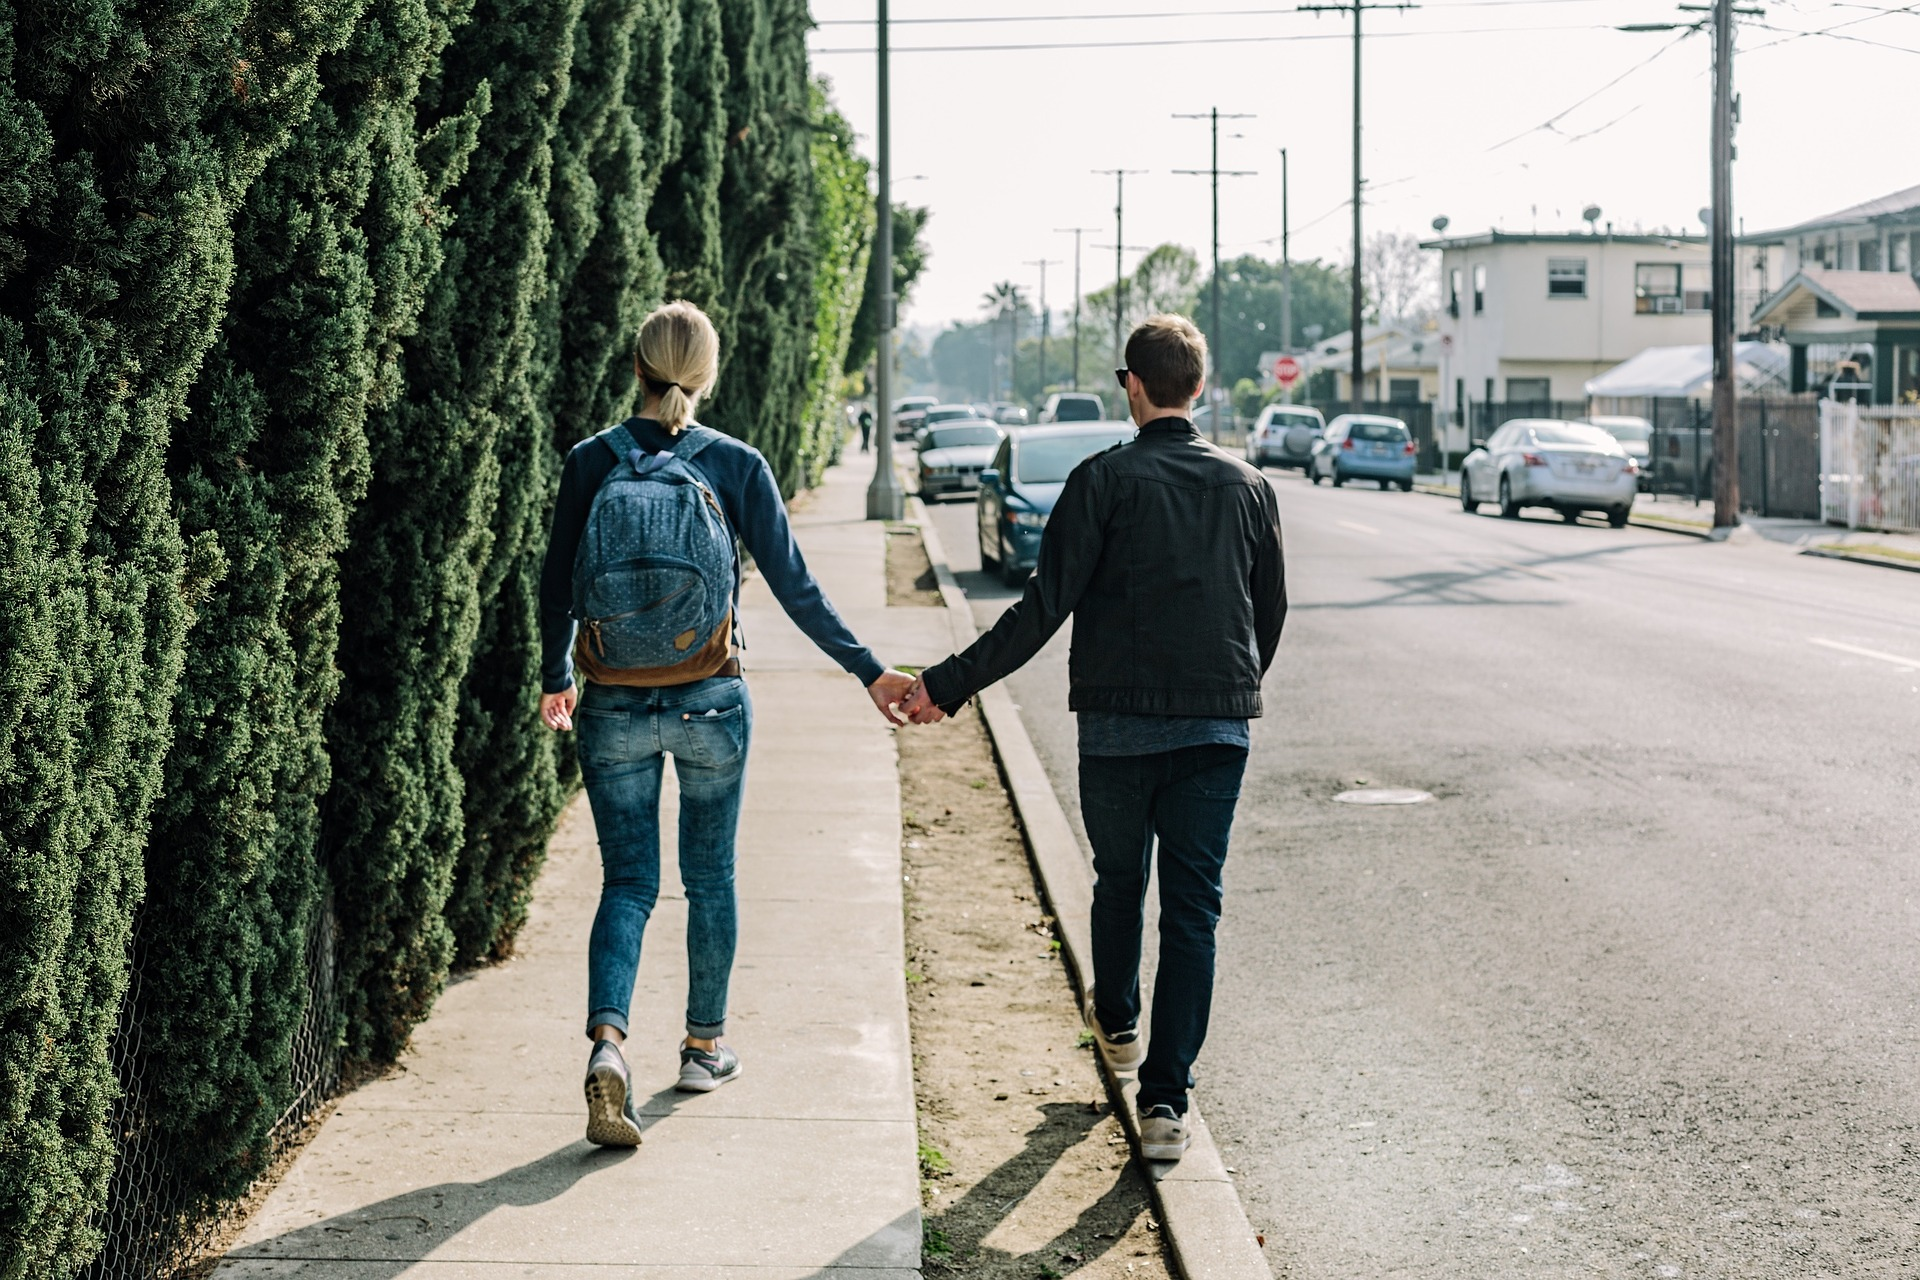 "<a href=""https://pixabay.com/photos/couple-holding-hands-walking-love-1210023/"">Image</a> by <a href=""https://pixabay.com/users/Free-Photos-242387/"">Free-Photos</a> on Pixabay"